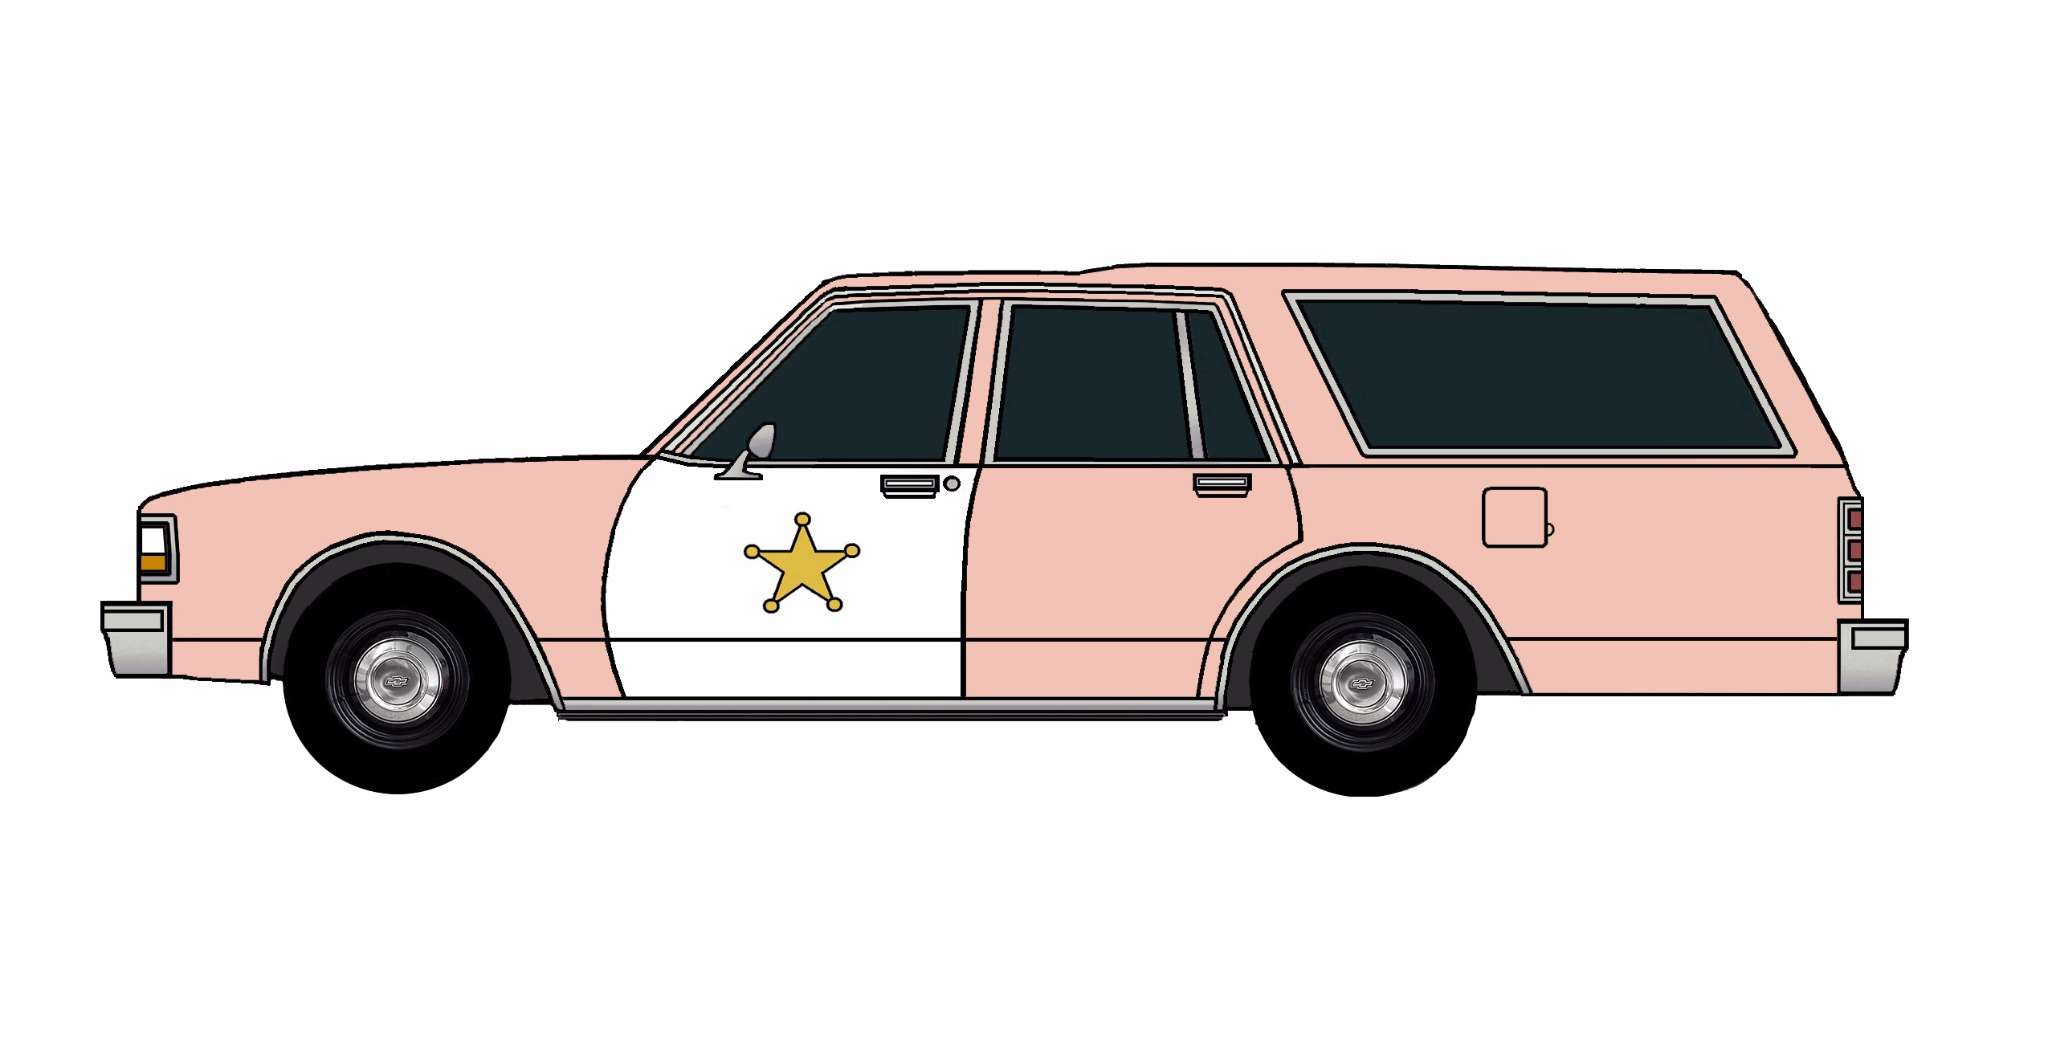 1987 Chevy Caprice 9C1 Wagon ROSE PINK